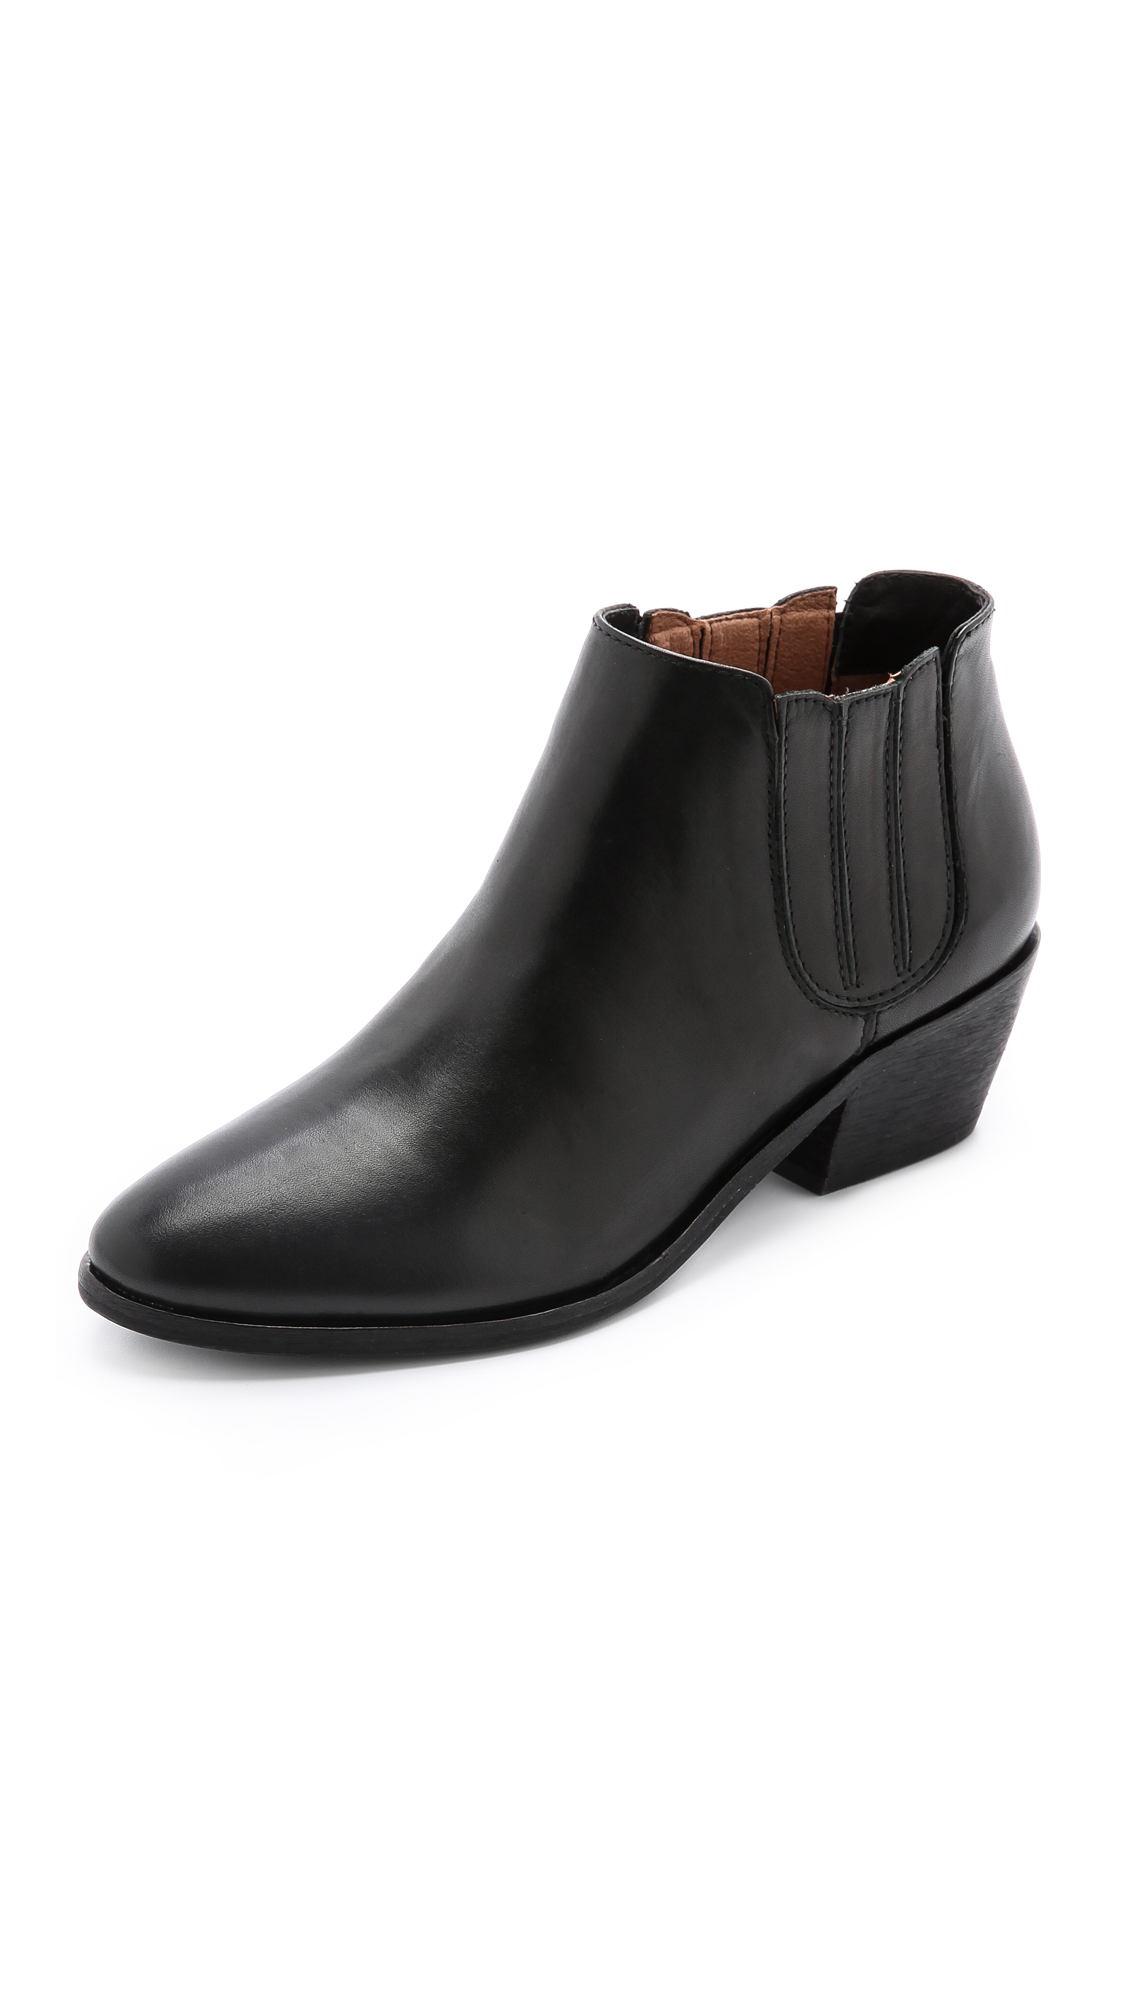 Joie 'Barlow' Bootie (Women) In Black